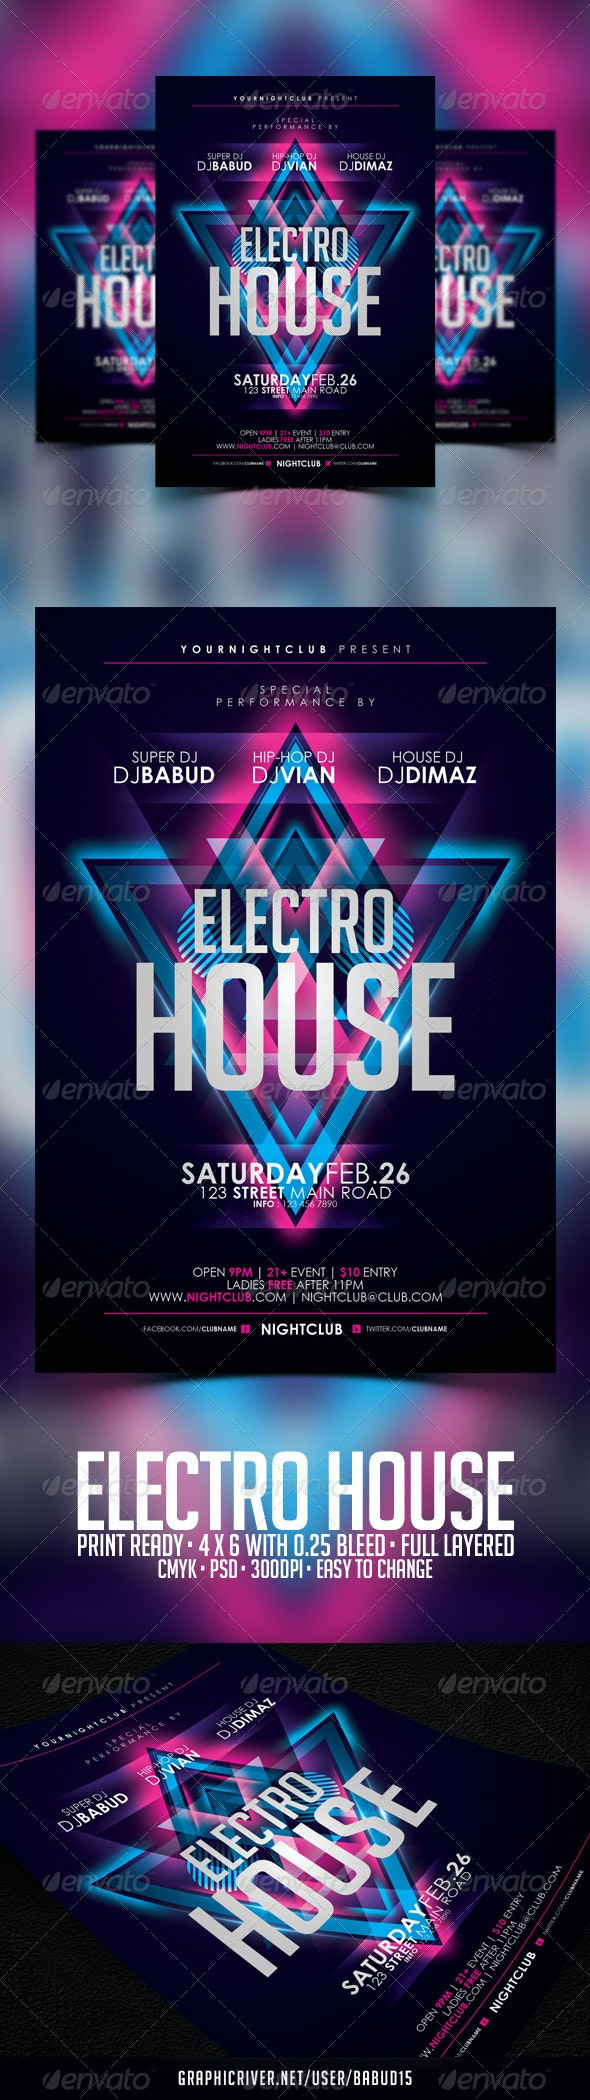 Electro House Flyer Template - Clubs & Parties Events